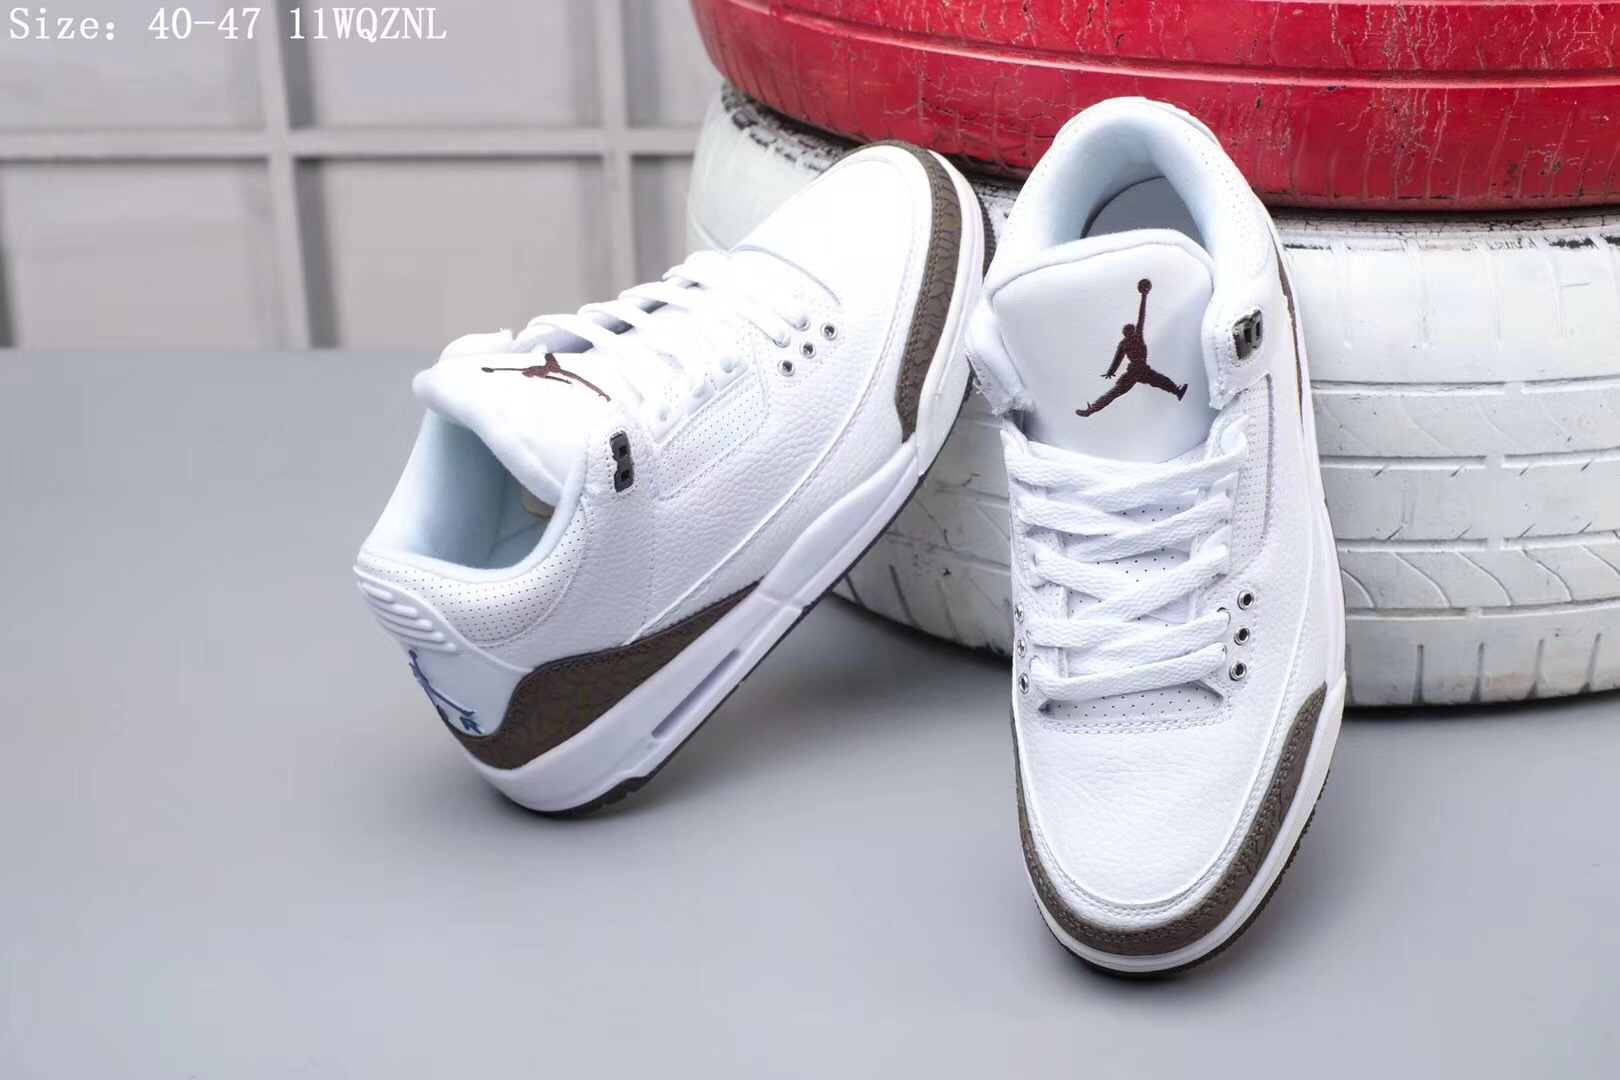 Original Air Jordan 3 White Brown Shoes